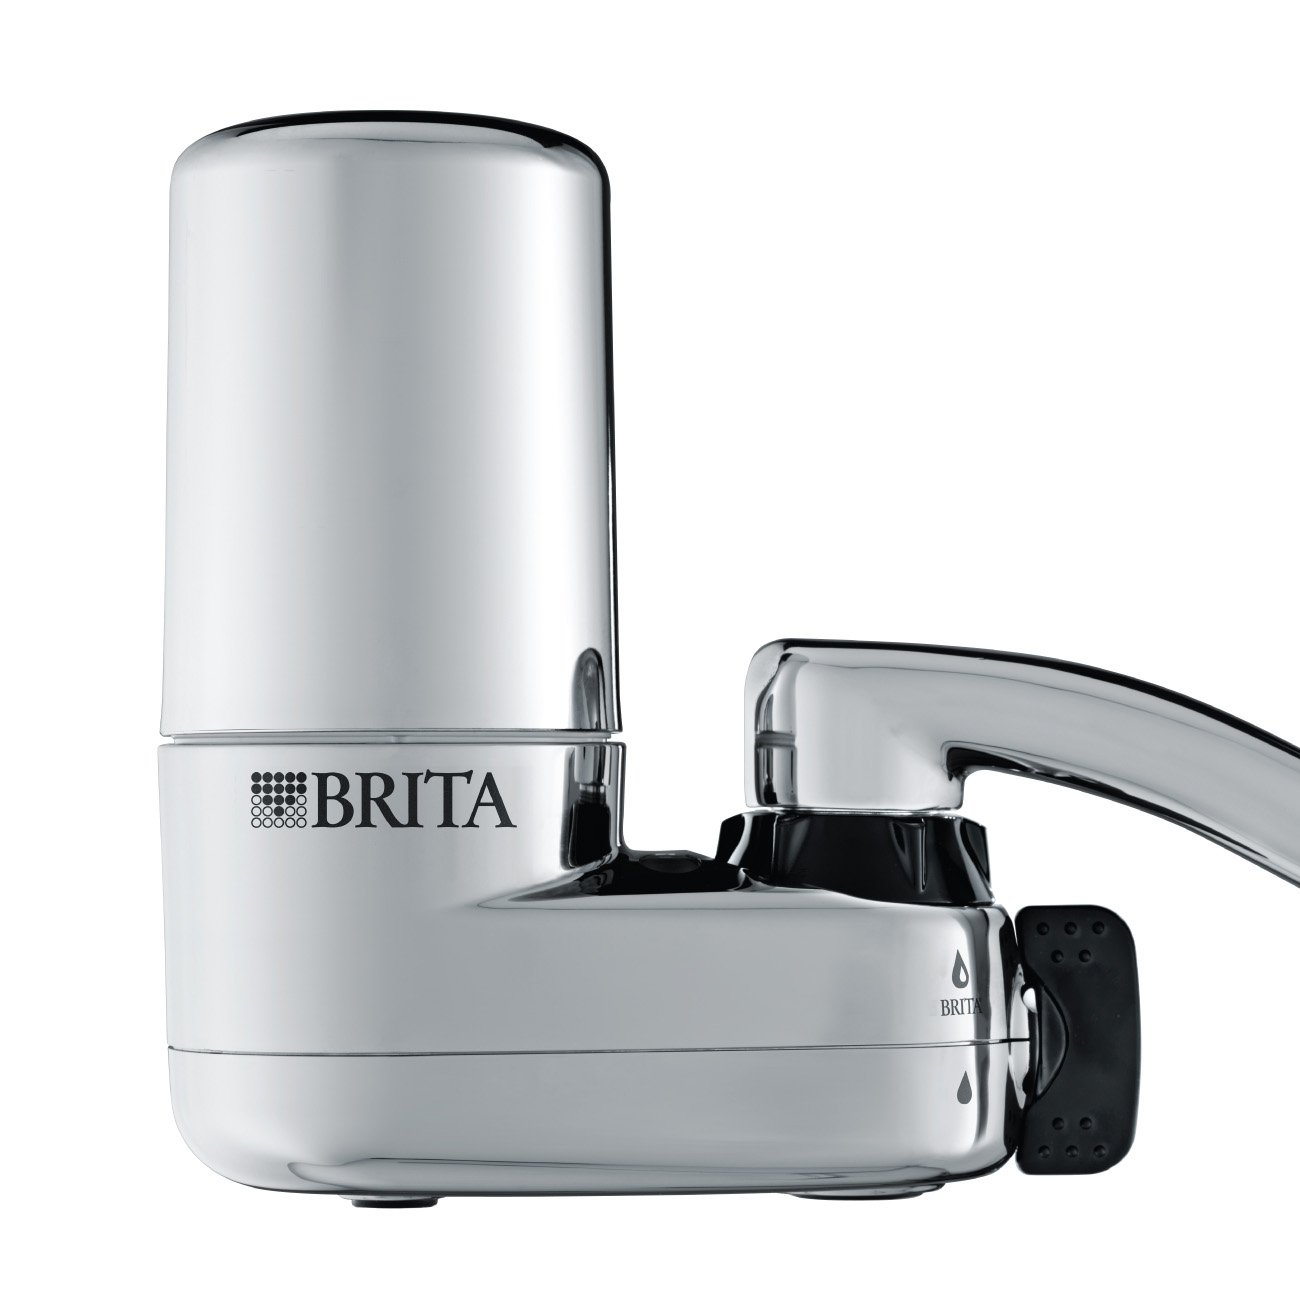 water filtration faucets kitchen new brita water kitchen counter sink filtration system tap faucet with filter ebay 9881